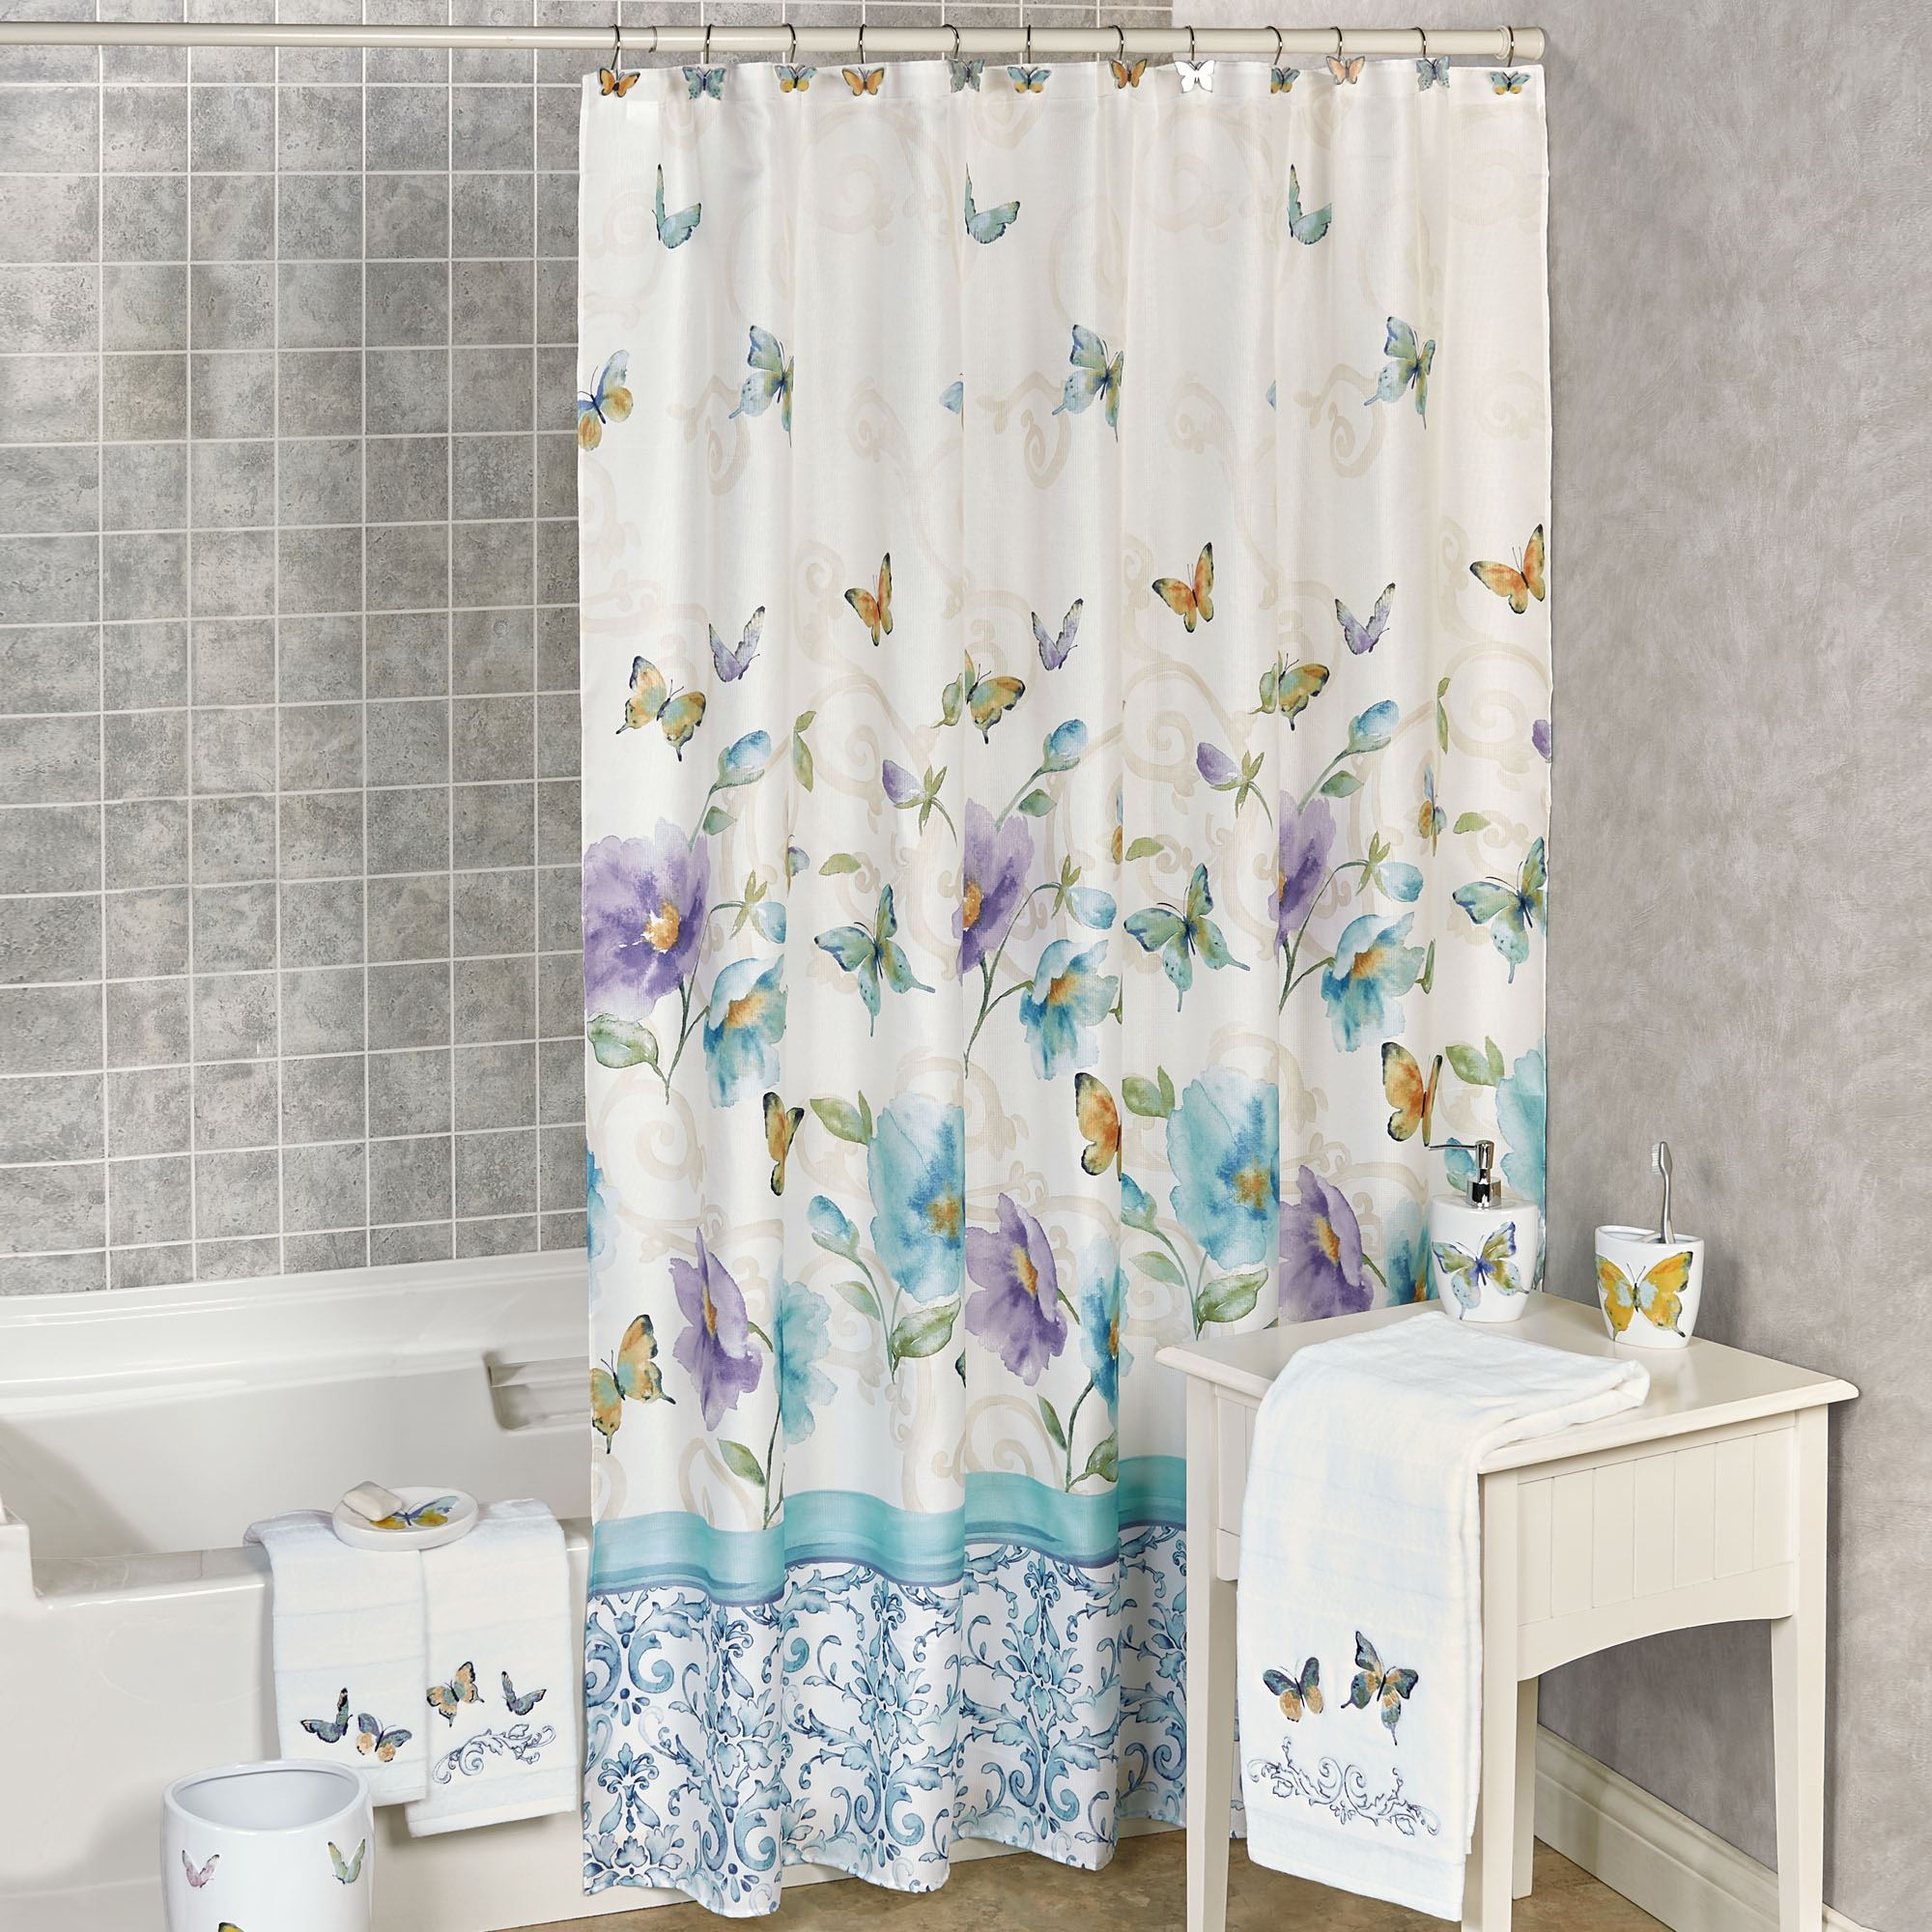 floral shower curtain. Watercolor Garden Shower Curtain Multi Cool 70 X 72 Floral